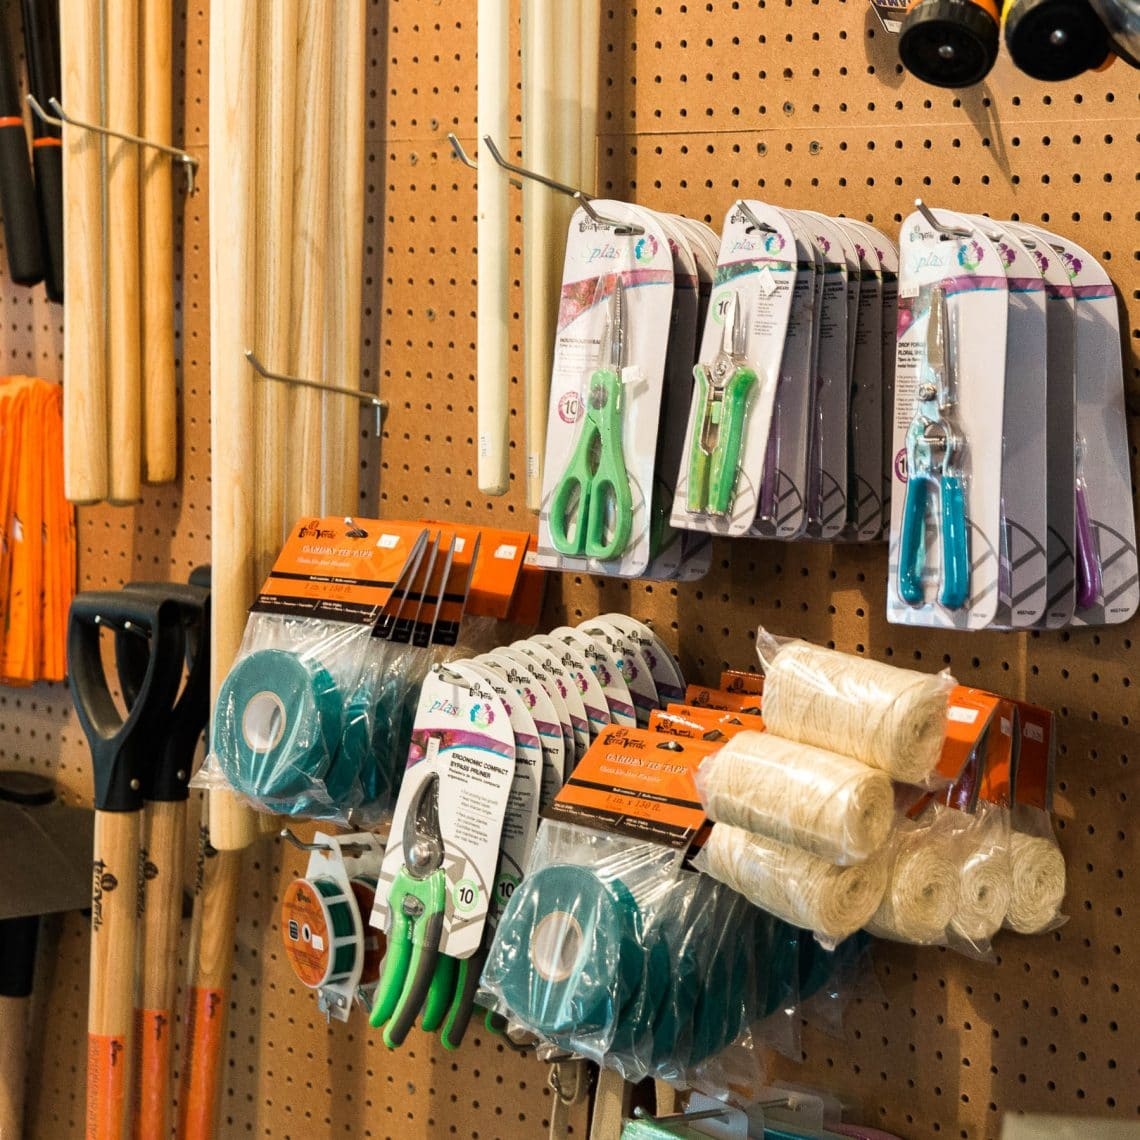 Trimmers, gloves, shovels, rakes, trowels, and other gardening and landscaping supplies at Kalleco Nursery Corp, Ulster County Garden Center.